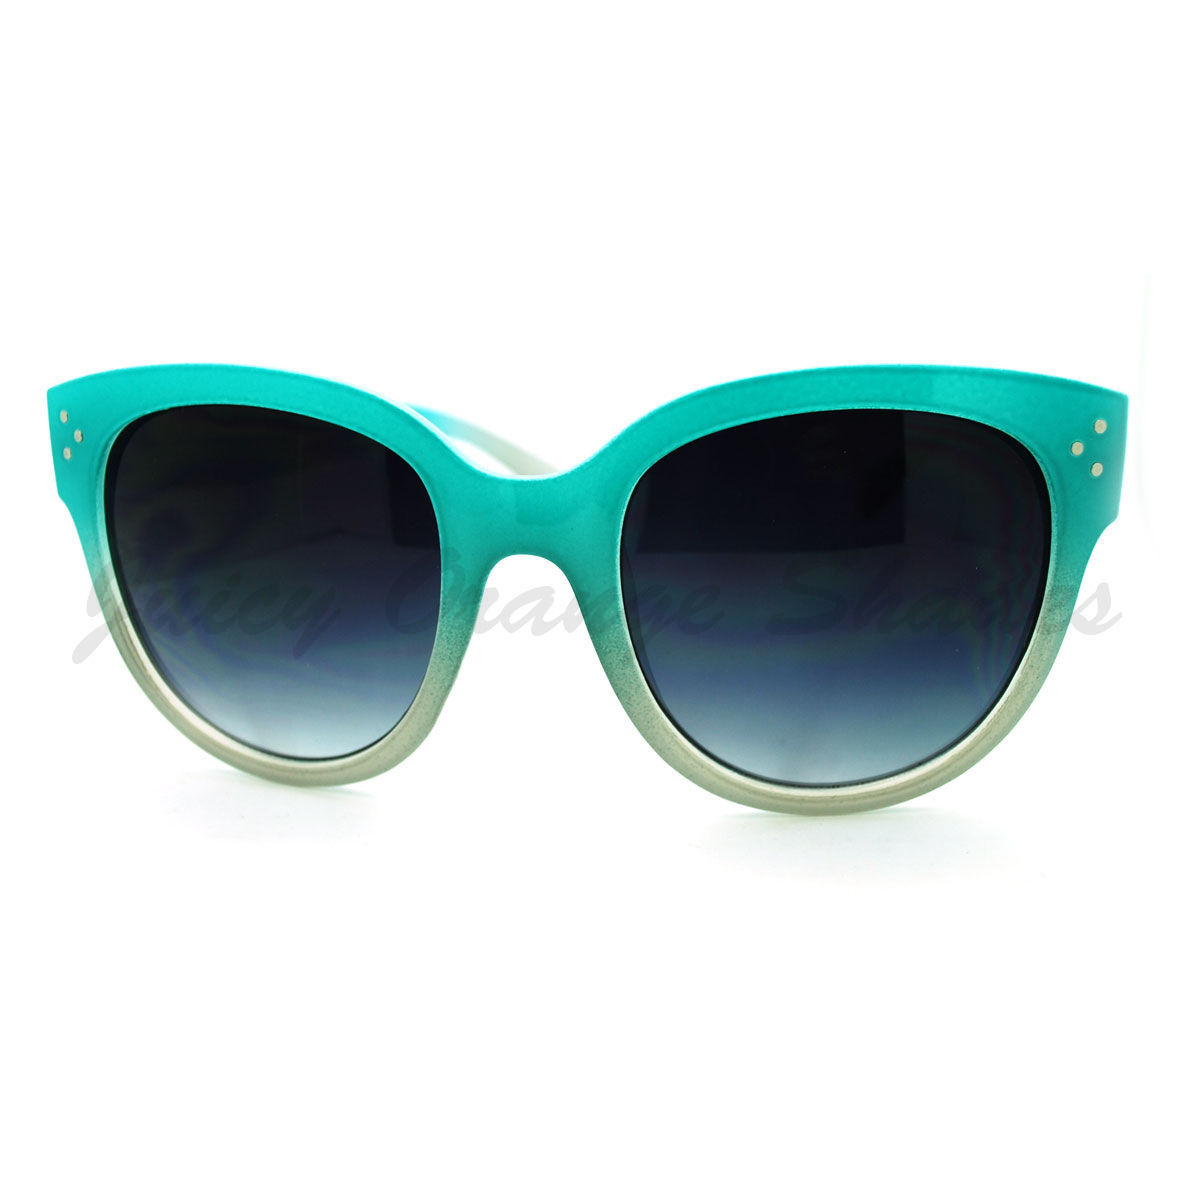 Womens Oversized Butterfly Cateye Frame Sunglasses 2-tone Ombre Colors